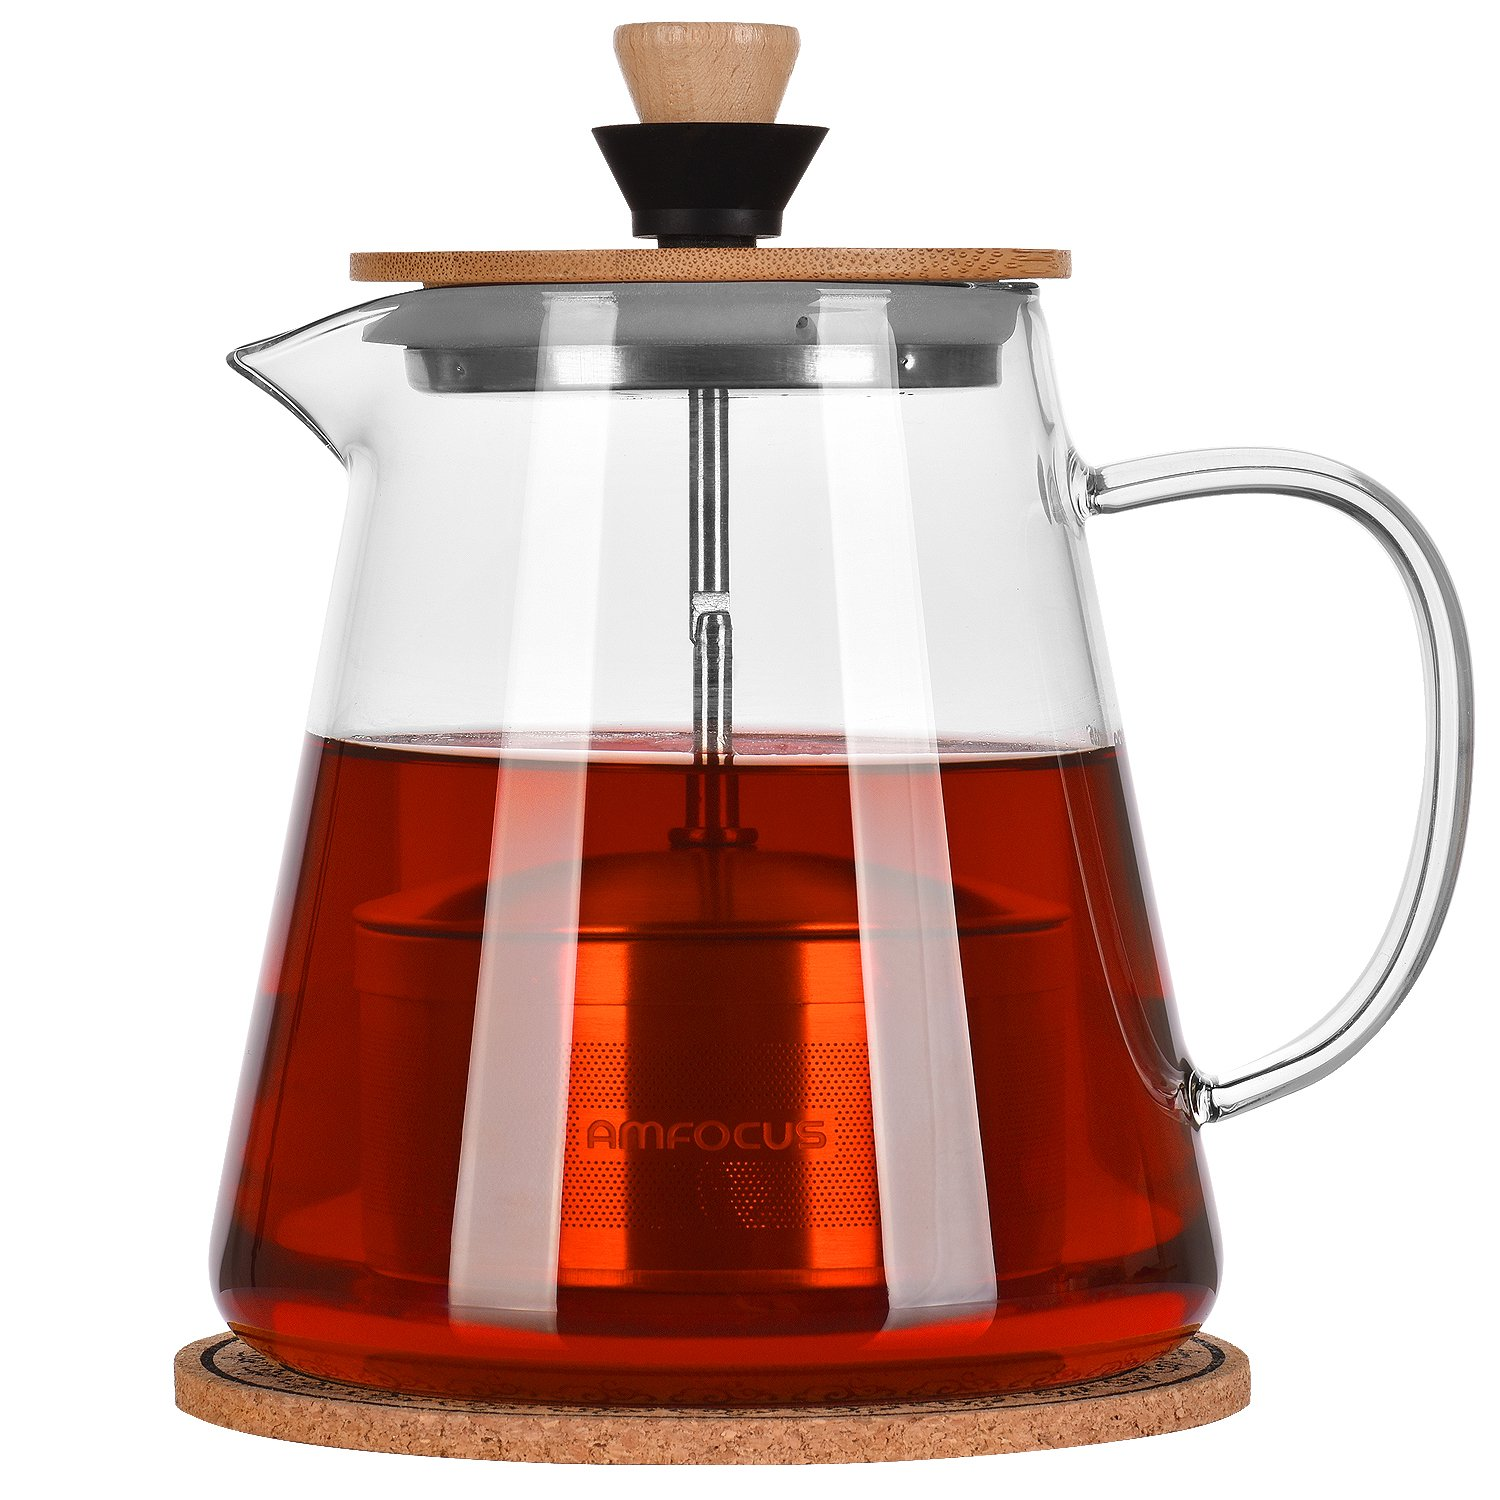 Glass Teapot with Infuser Set - 950ml/32oz Borosilicate Glass Teapot with Tea Strainer&Coaster - Stovetop Safe Youlanda